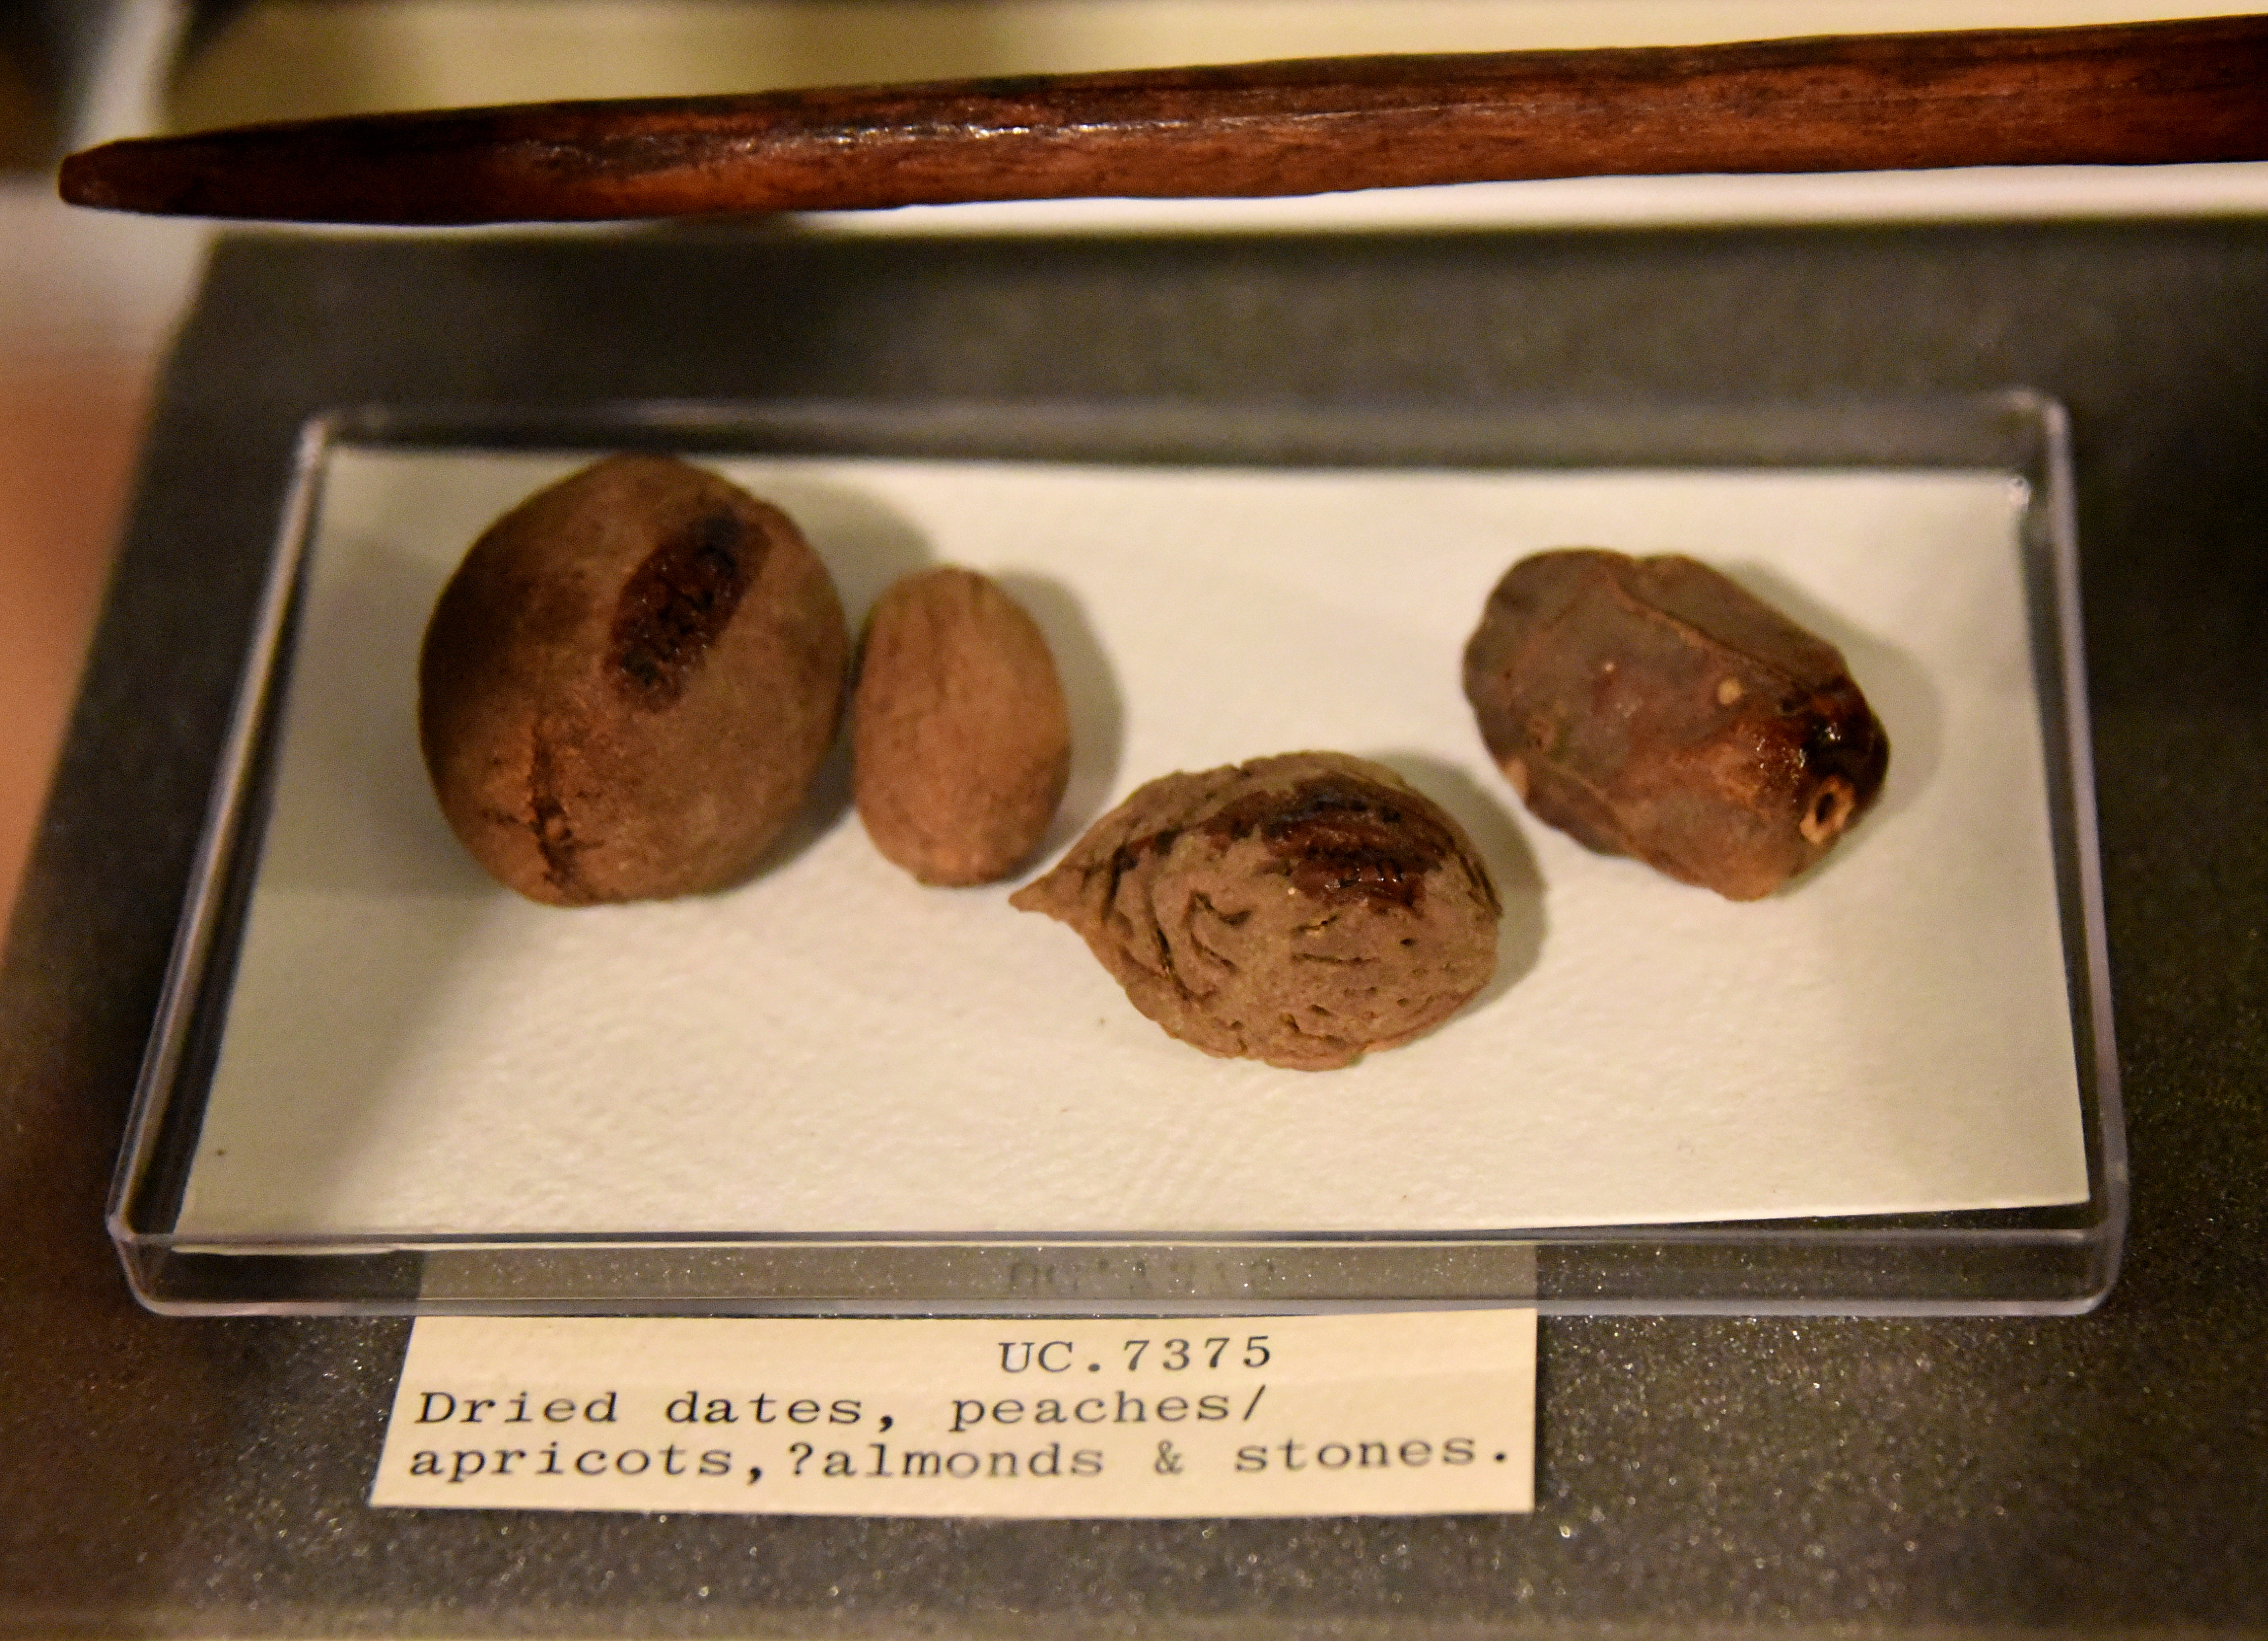 Peach wikipedia dried date peach apricot and stones from lahun fayum egypt late middle kingdom the petrie museum of egyptian archaeology london buycottarizona Image collections